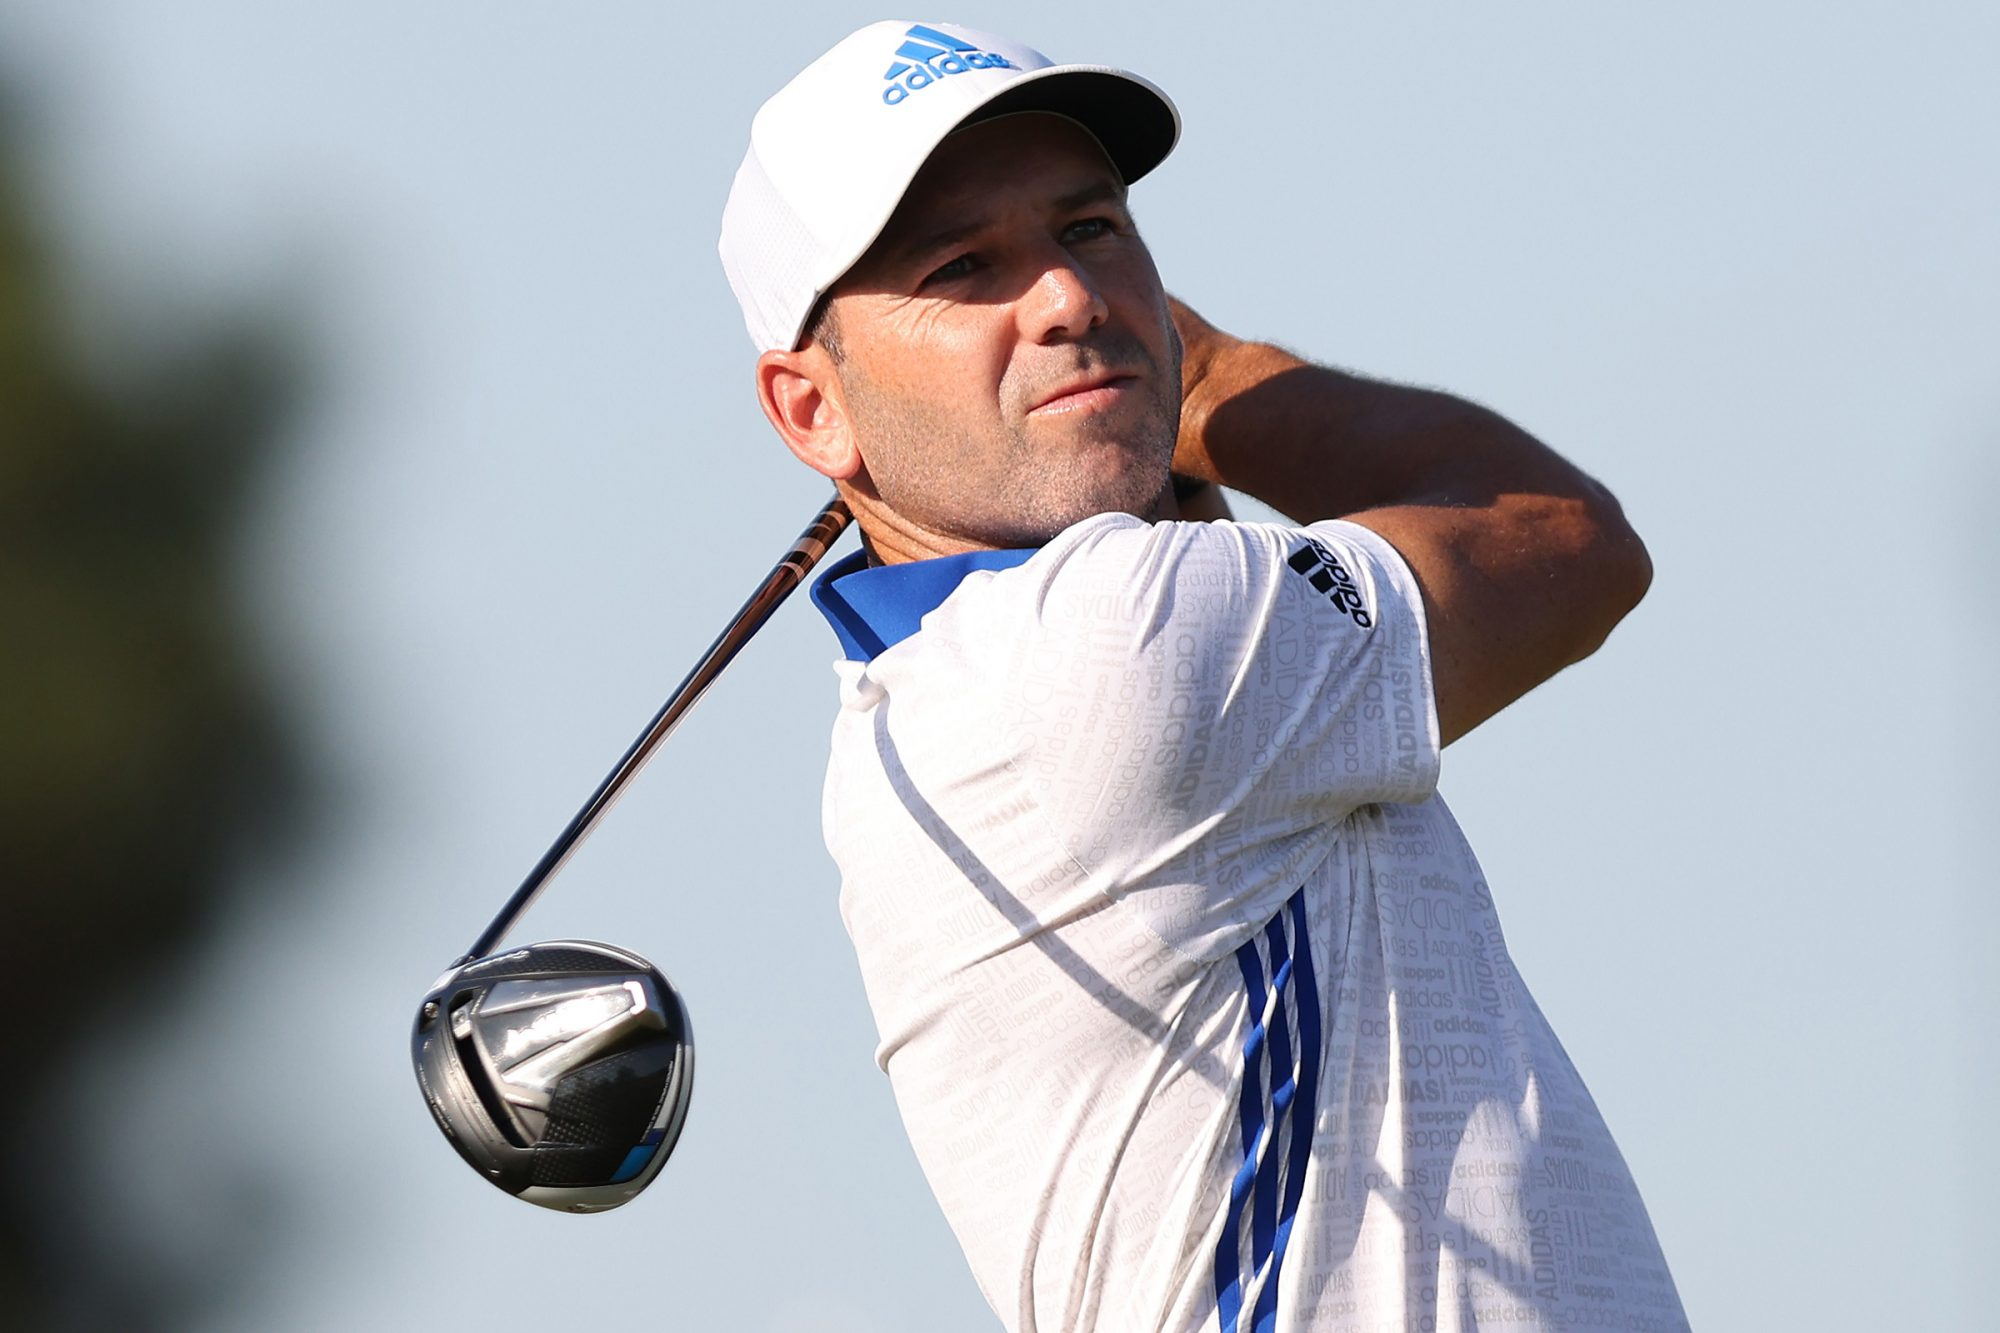 """The Spanish pro golfer won't play in the 2020 Masters Tournament due to a COVID-19 diagnosis, he announced on Nov. 9.                             Garcia, 40, shared the news in a series of tweets, writing, """"On Saturday night after driving back from the Houston Open, I started feeling a bit of a sore throat and a cough. The symptoms stayed with me on Sunday morning so I decided to get tested for COVID-19 and so did my wife Angela. Thankfully she tested negative, but I didn't.""""                             Garcia continued in a second tweet, """"After 21 years of not missing a Major Championship, I will sadly miss @themasters this week. The important thing is that my family and I are feeling good. We'll come back stronger and give the green jacket a go next April 👊🏼."""""""